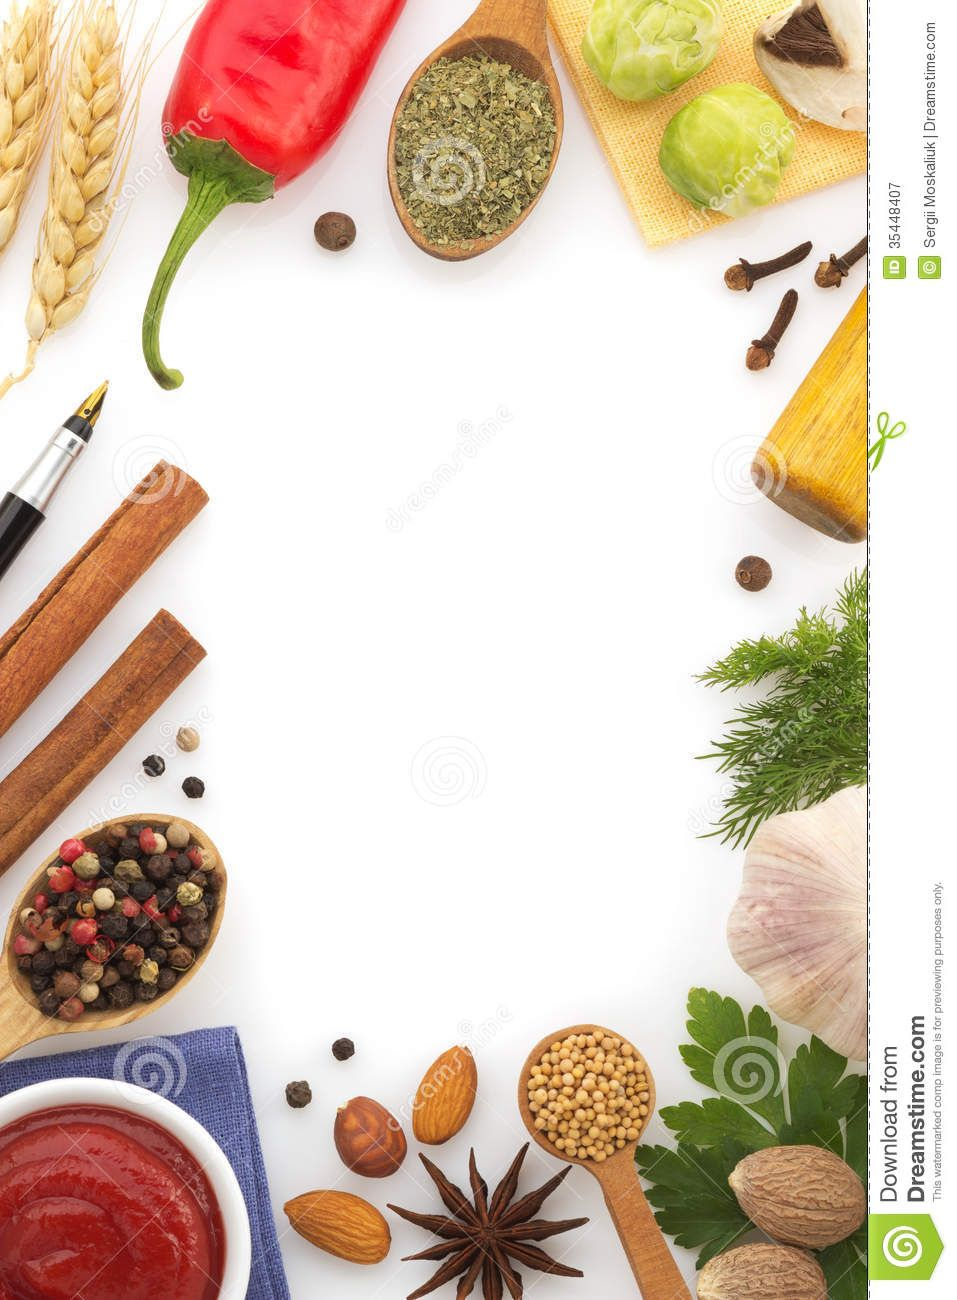 Wallpaper Spice Drops Candy Colorful 4k Lifestyle 7500: Food-ingredients-spices-white-background-35448407.jpg (957